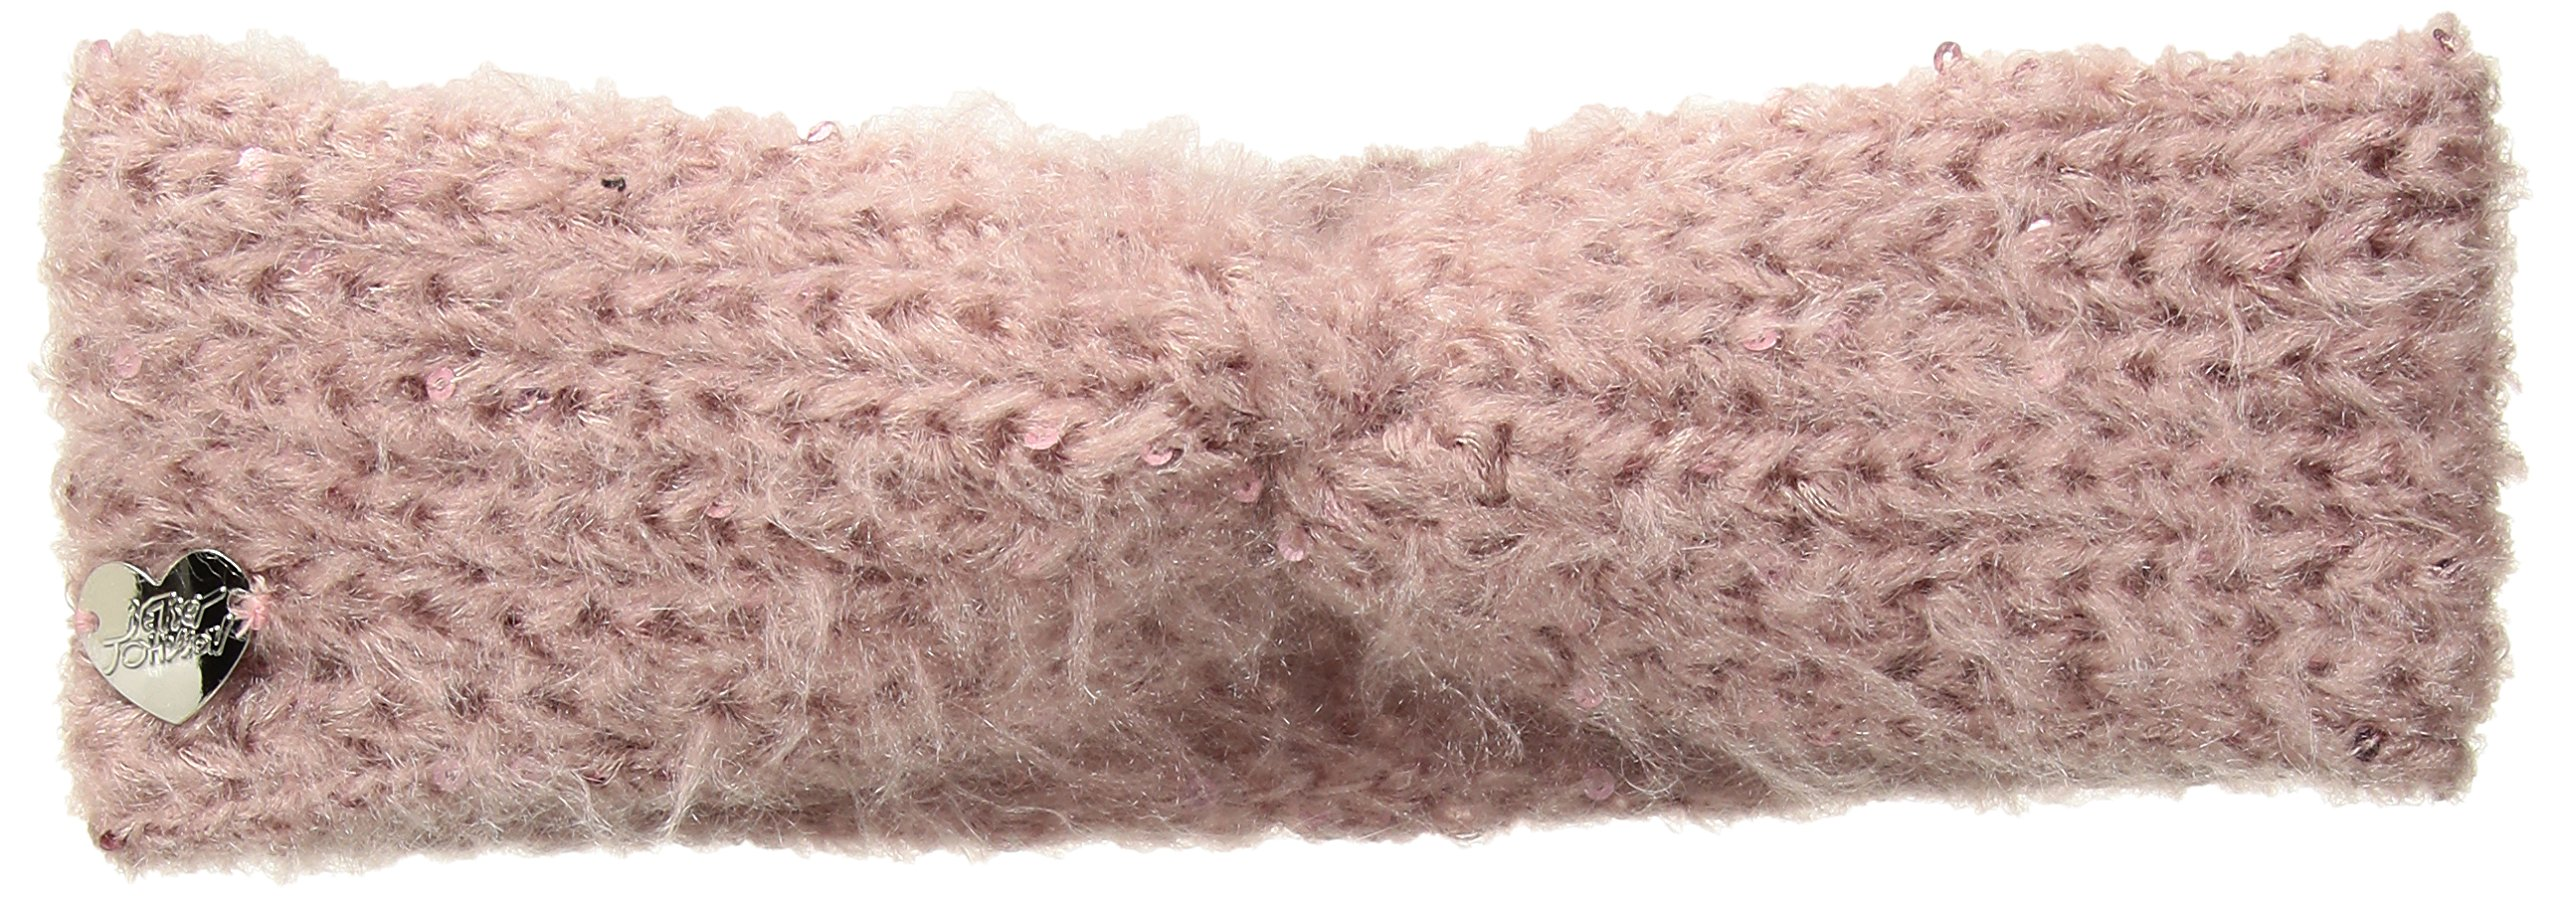 Betsey Johnson Women's Fuzzy Wuzzy Headband, Blush, ONE SIZE